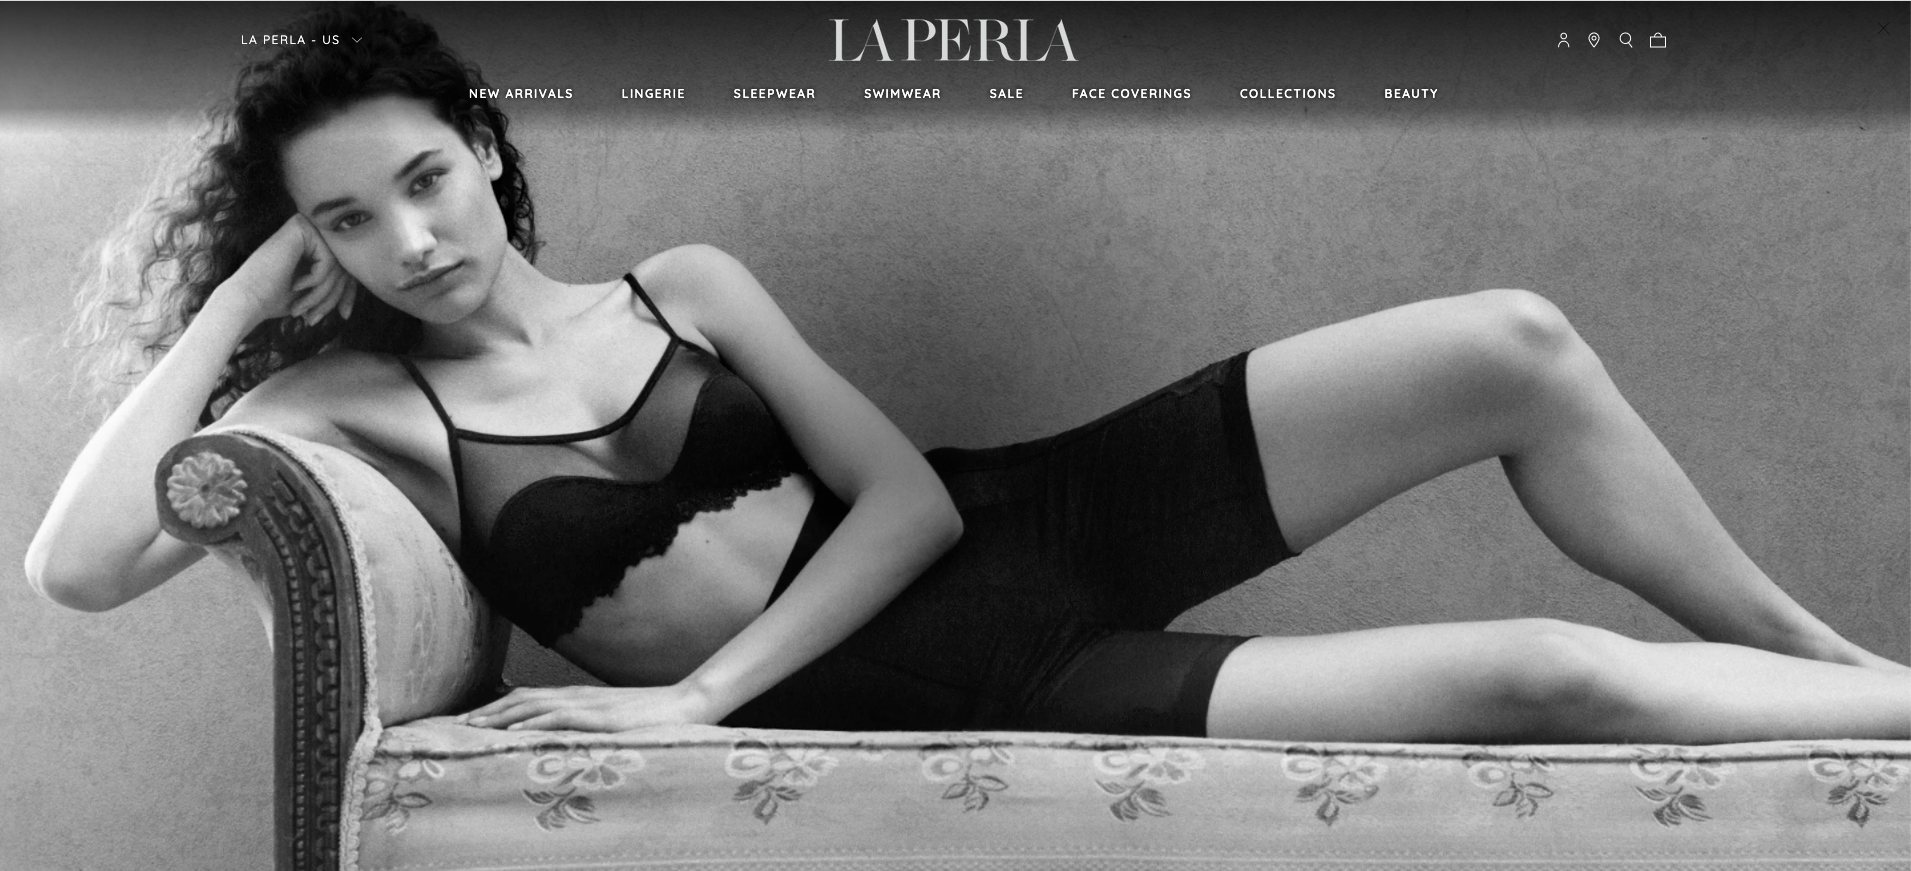 La Perla website